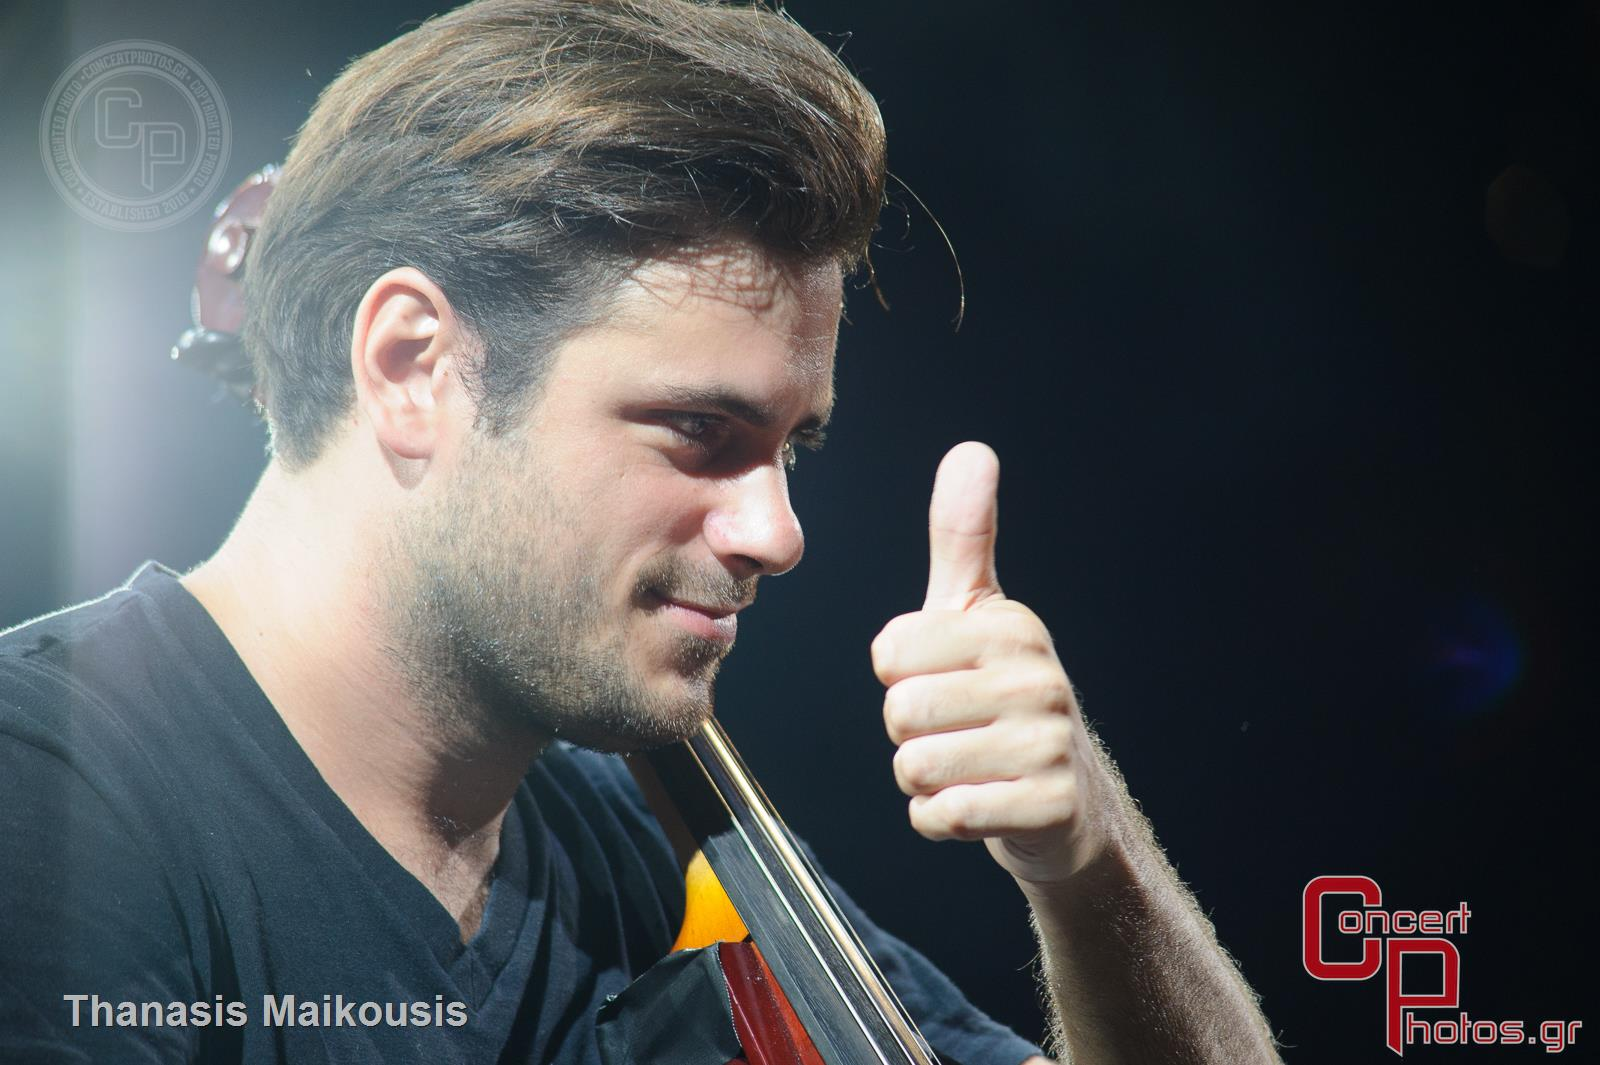 2Cellos-2Cellos Technopolis photographer: Thanasis Maikousis - untitled shoot-6141